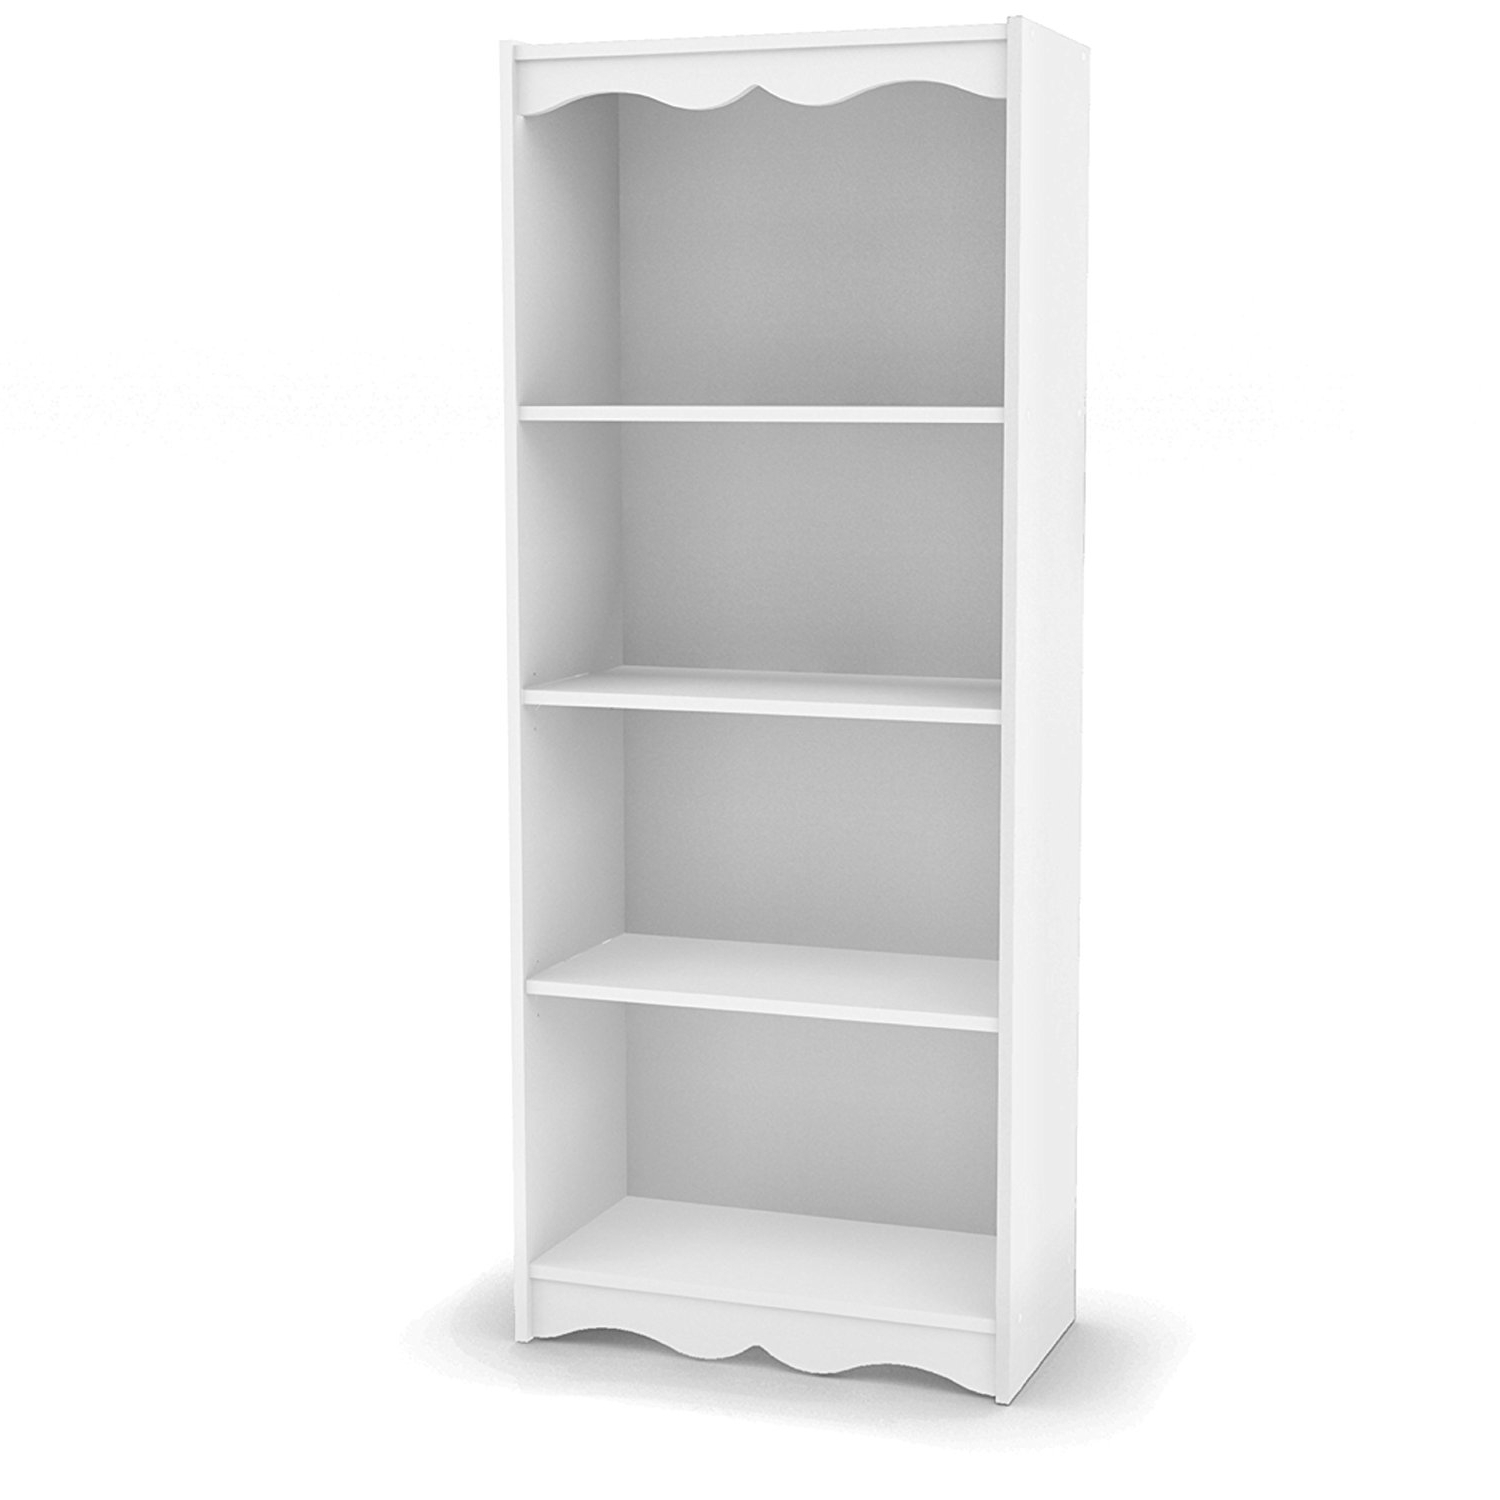 Most Popular Narrow White Bookcases Regarding Amazon: Sonax Hawthorn 60 Inch Tall Bookcase, Frost White (View 6 of 15)